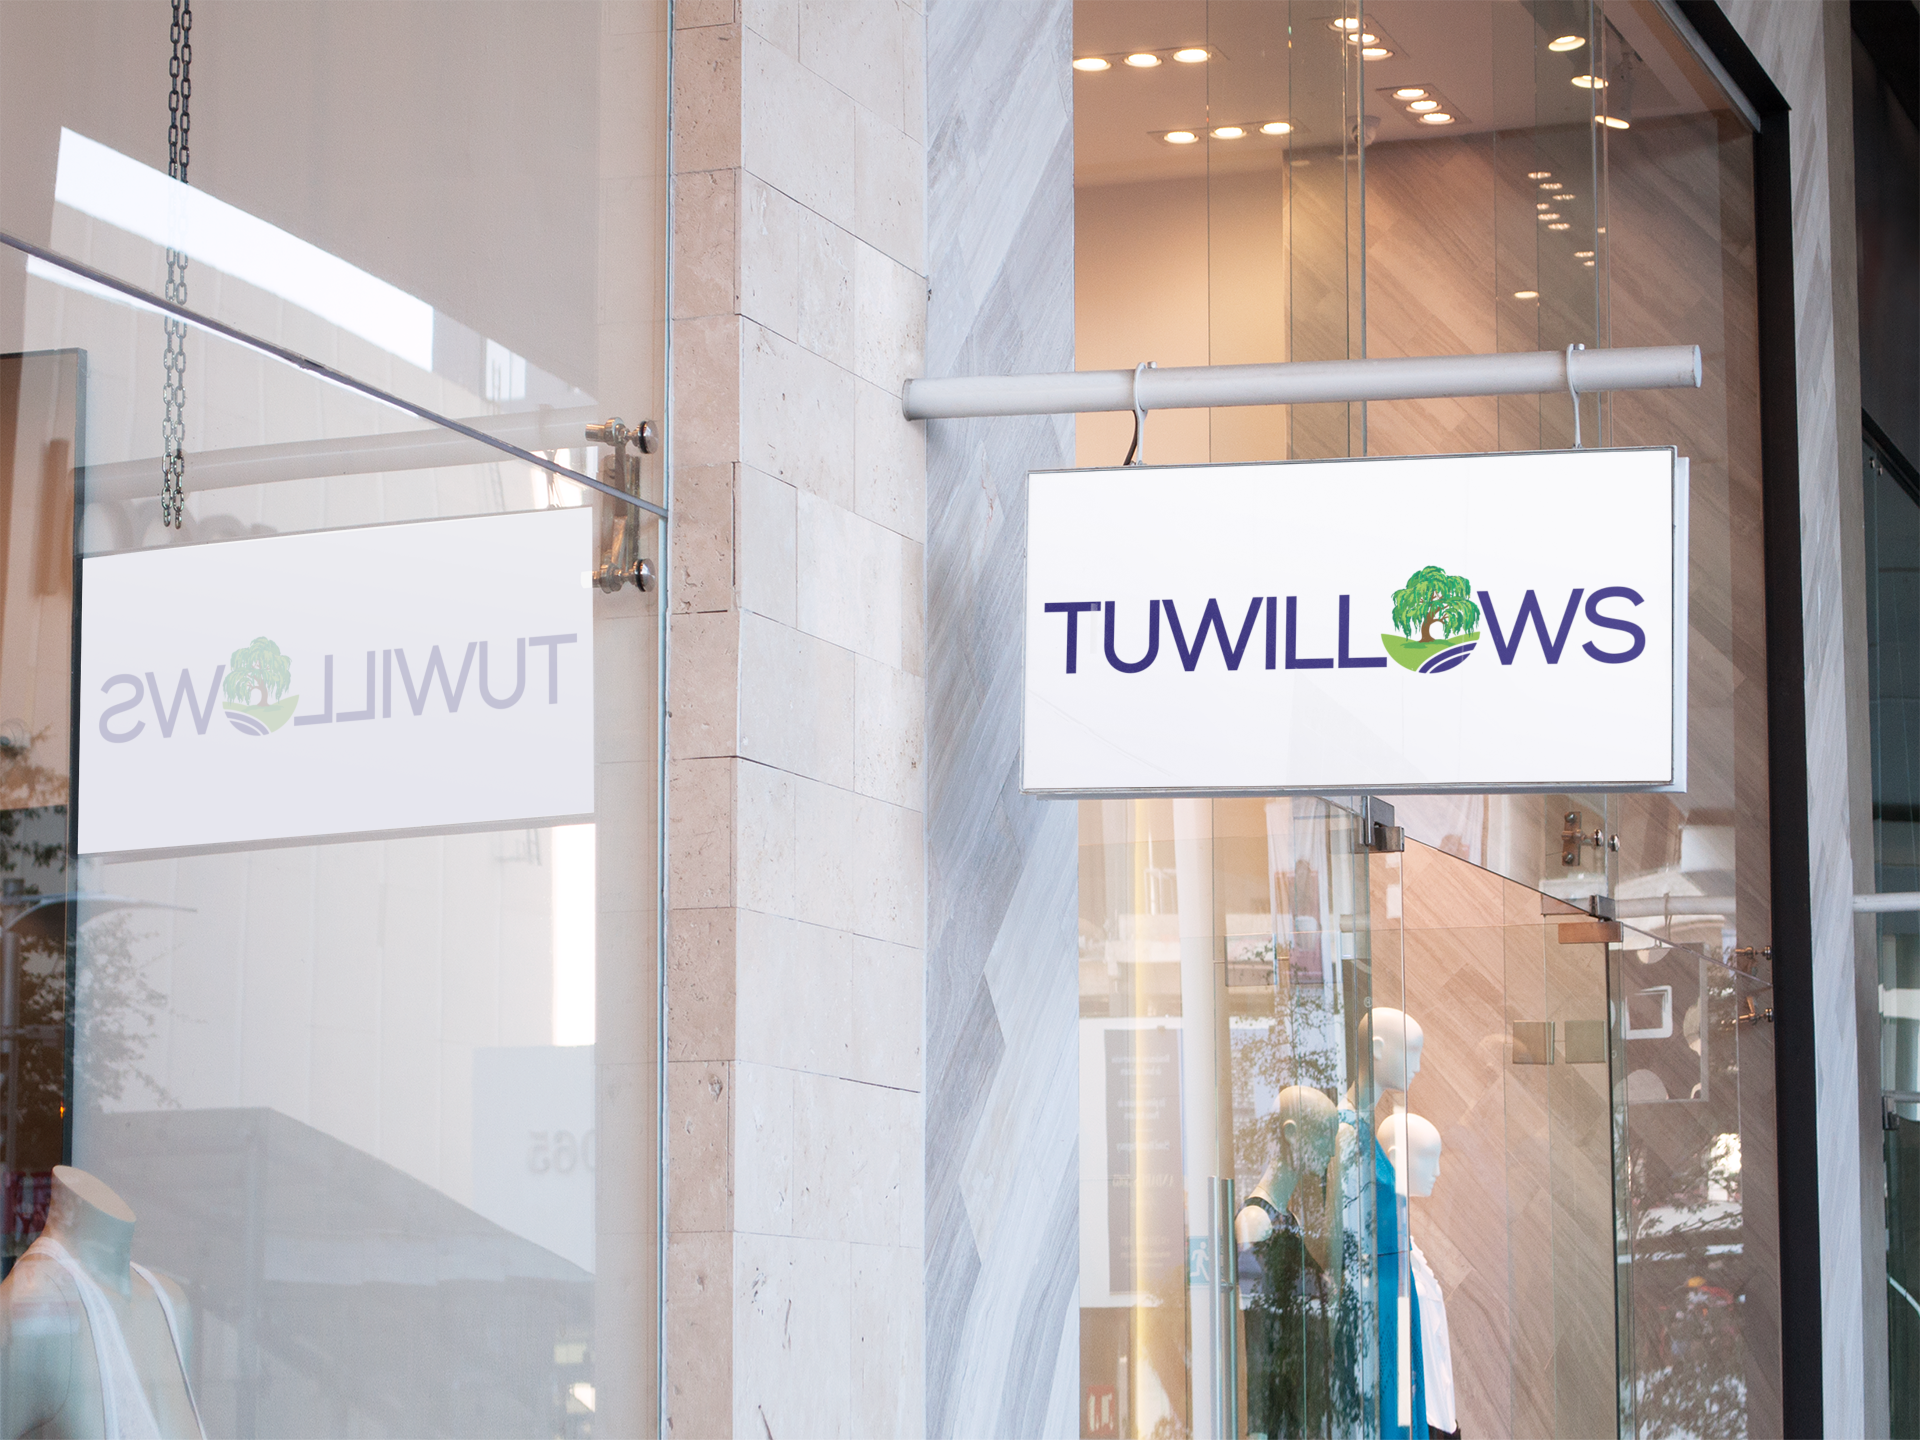 TuWillows